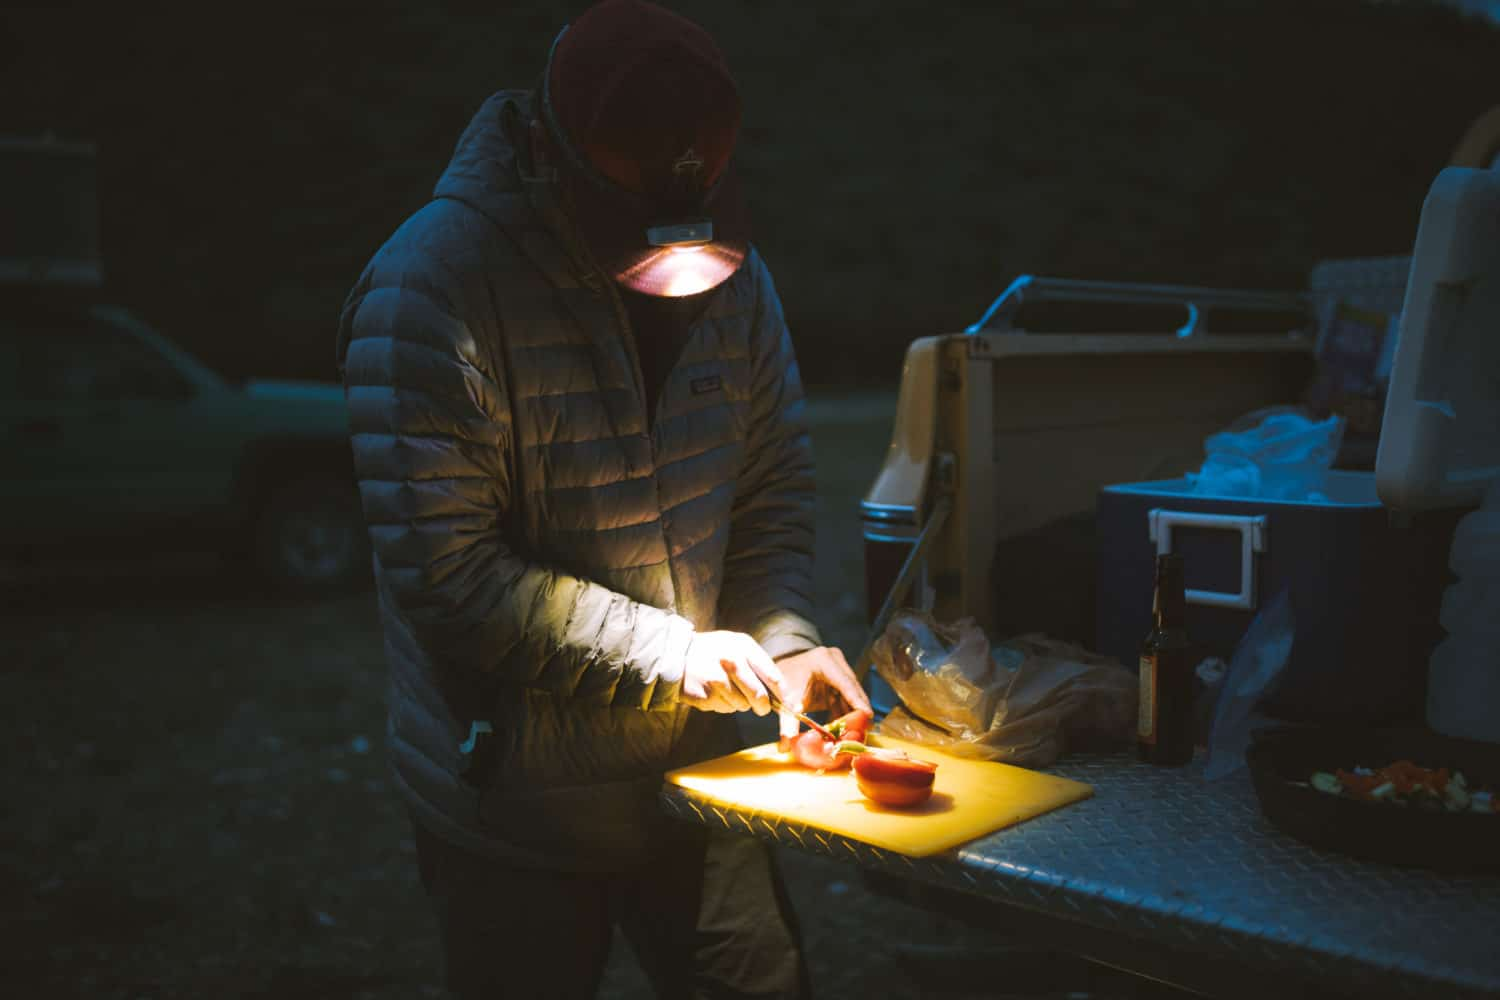 Preparing a camping meal by headlamp